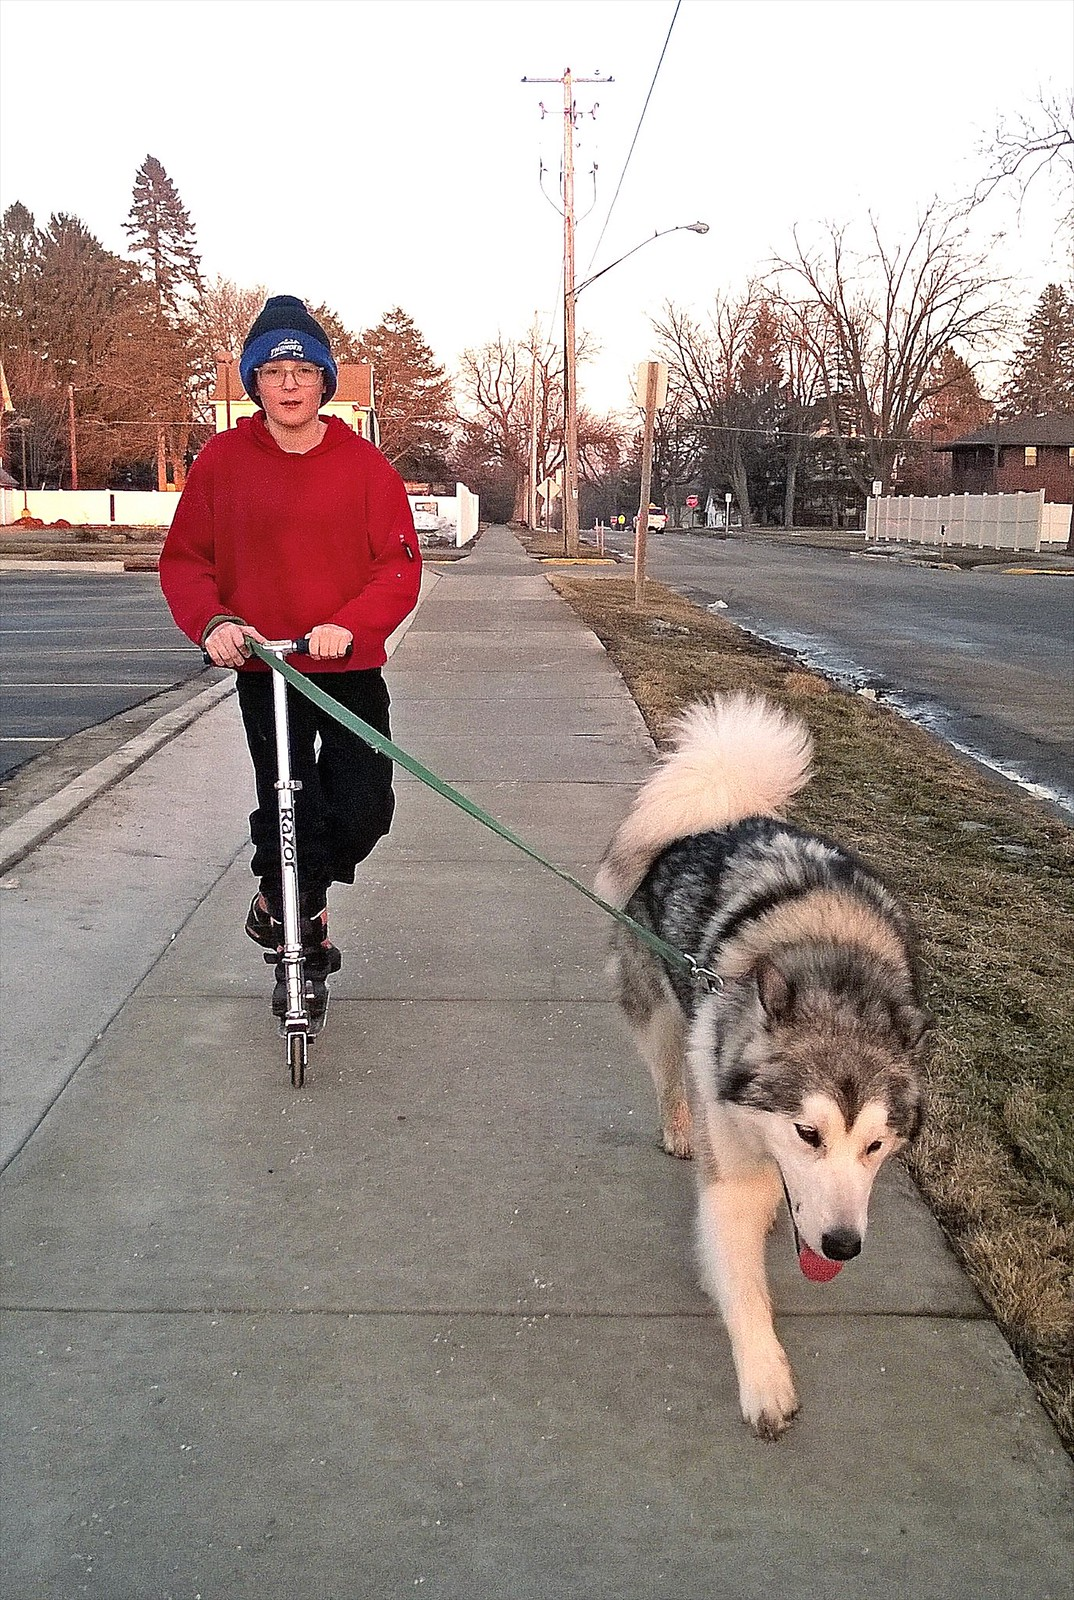 day 3902 - 68/365. odin scootering and dog walking.